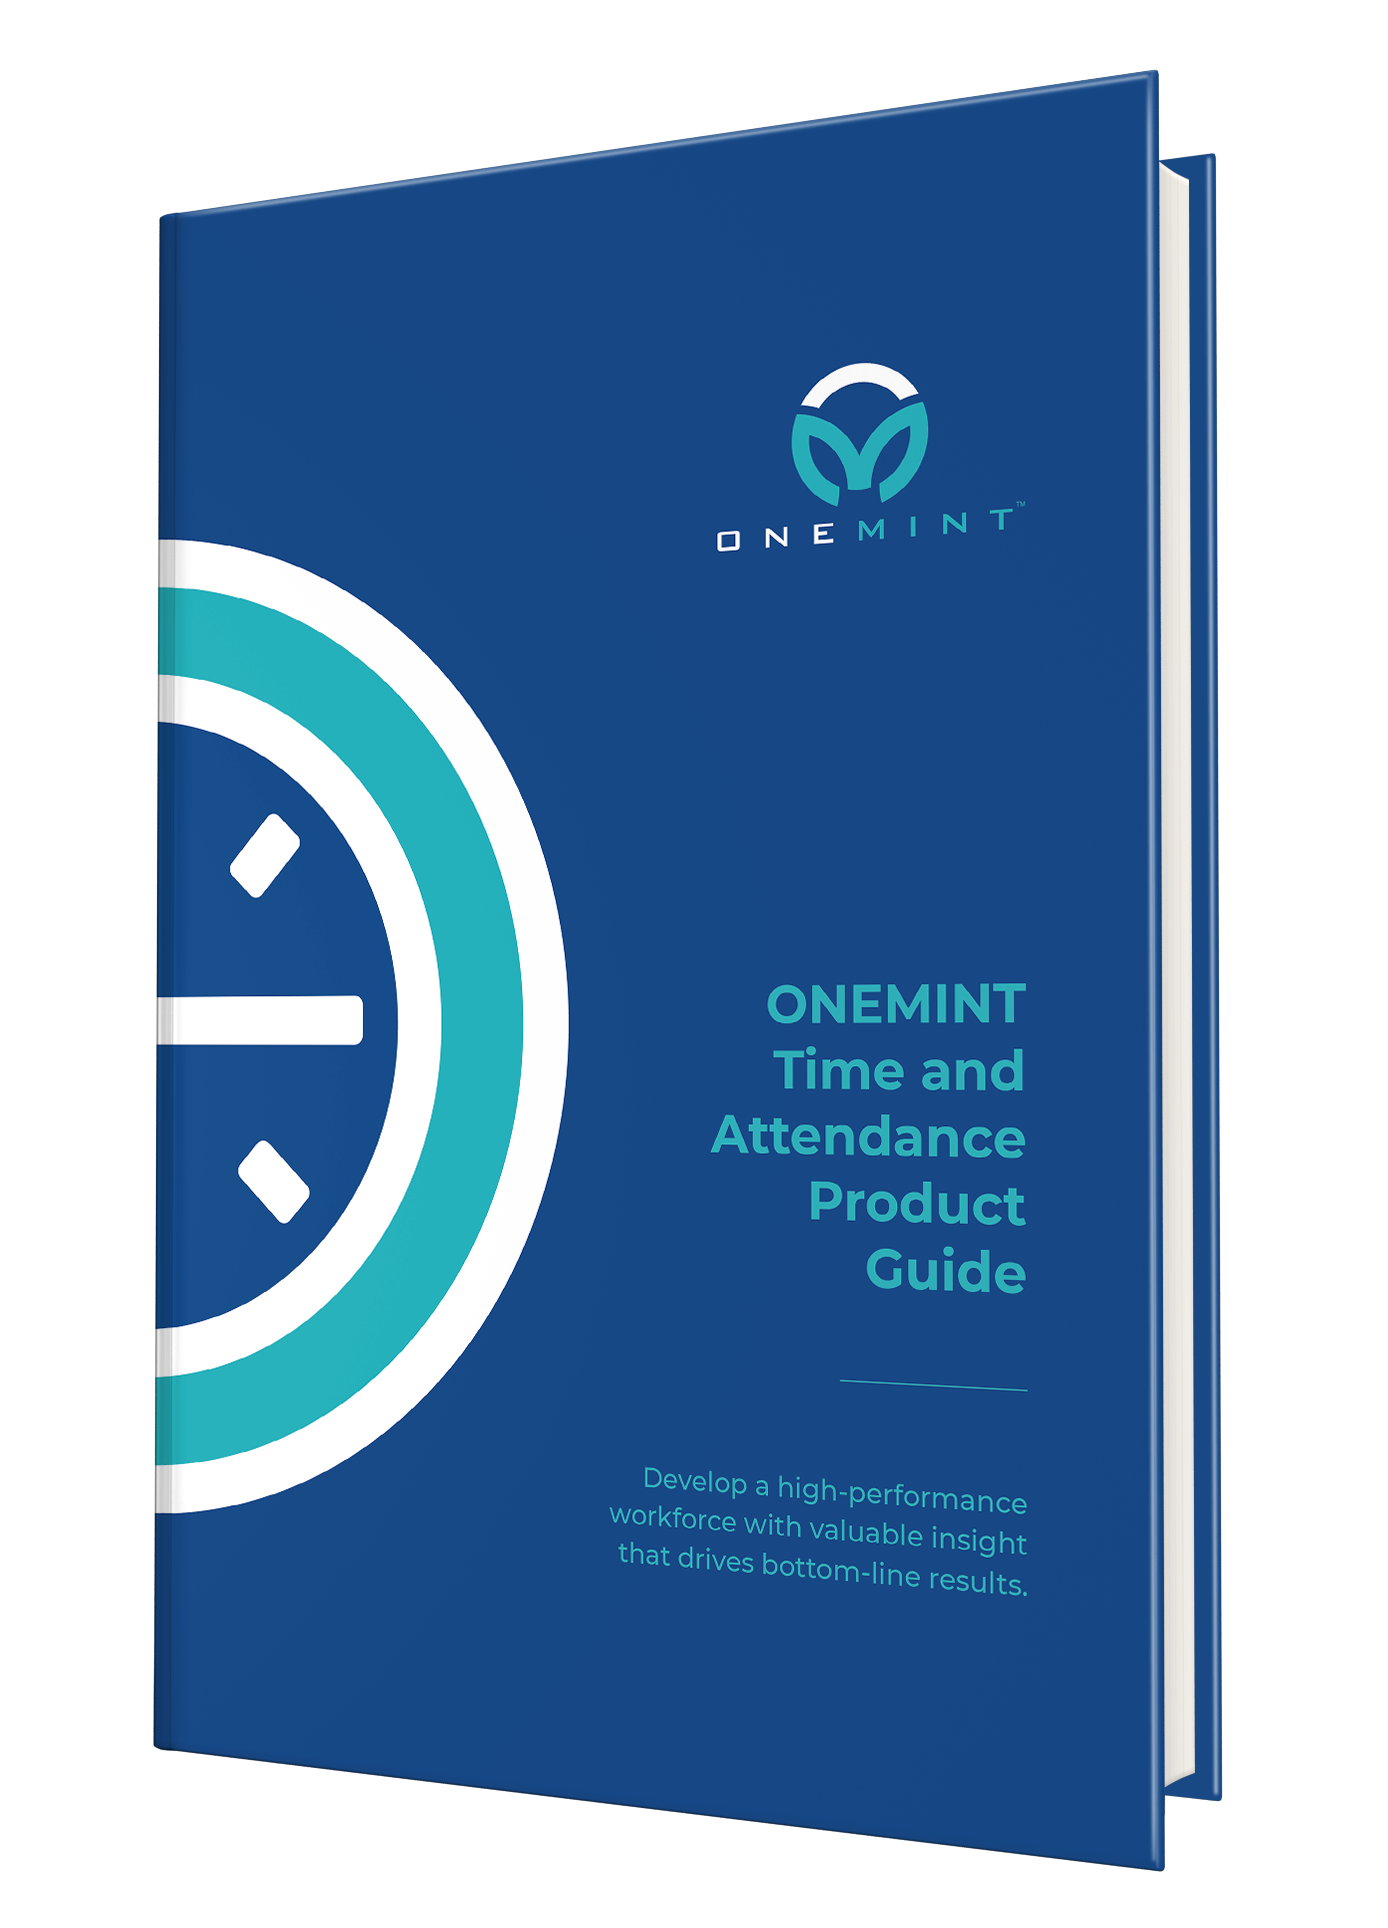 onemint-time-and-attendance-product-guide-2018.png